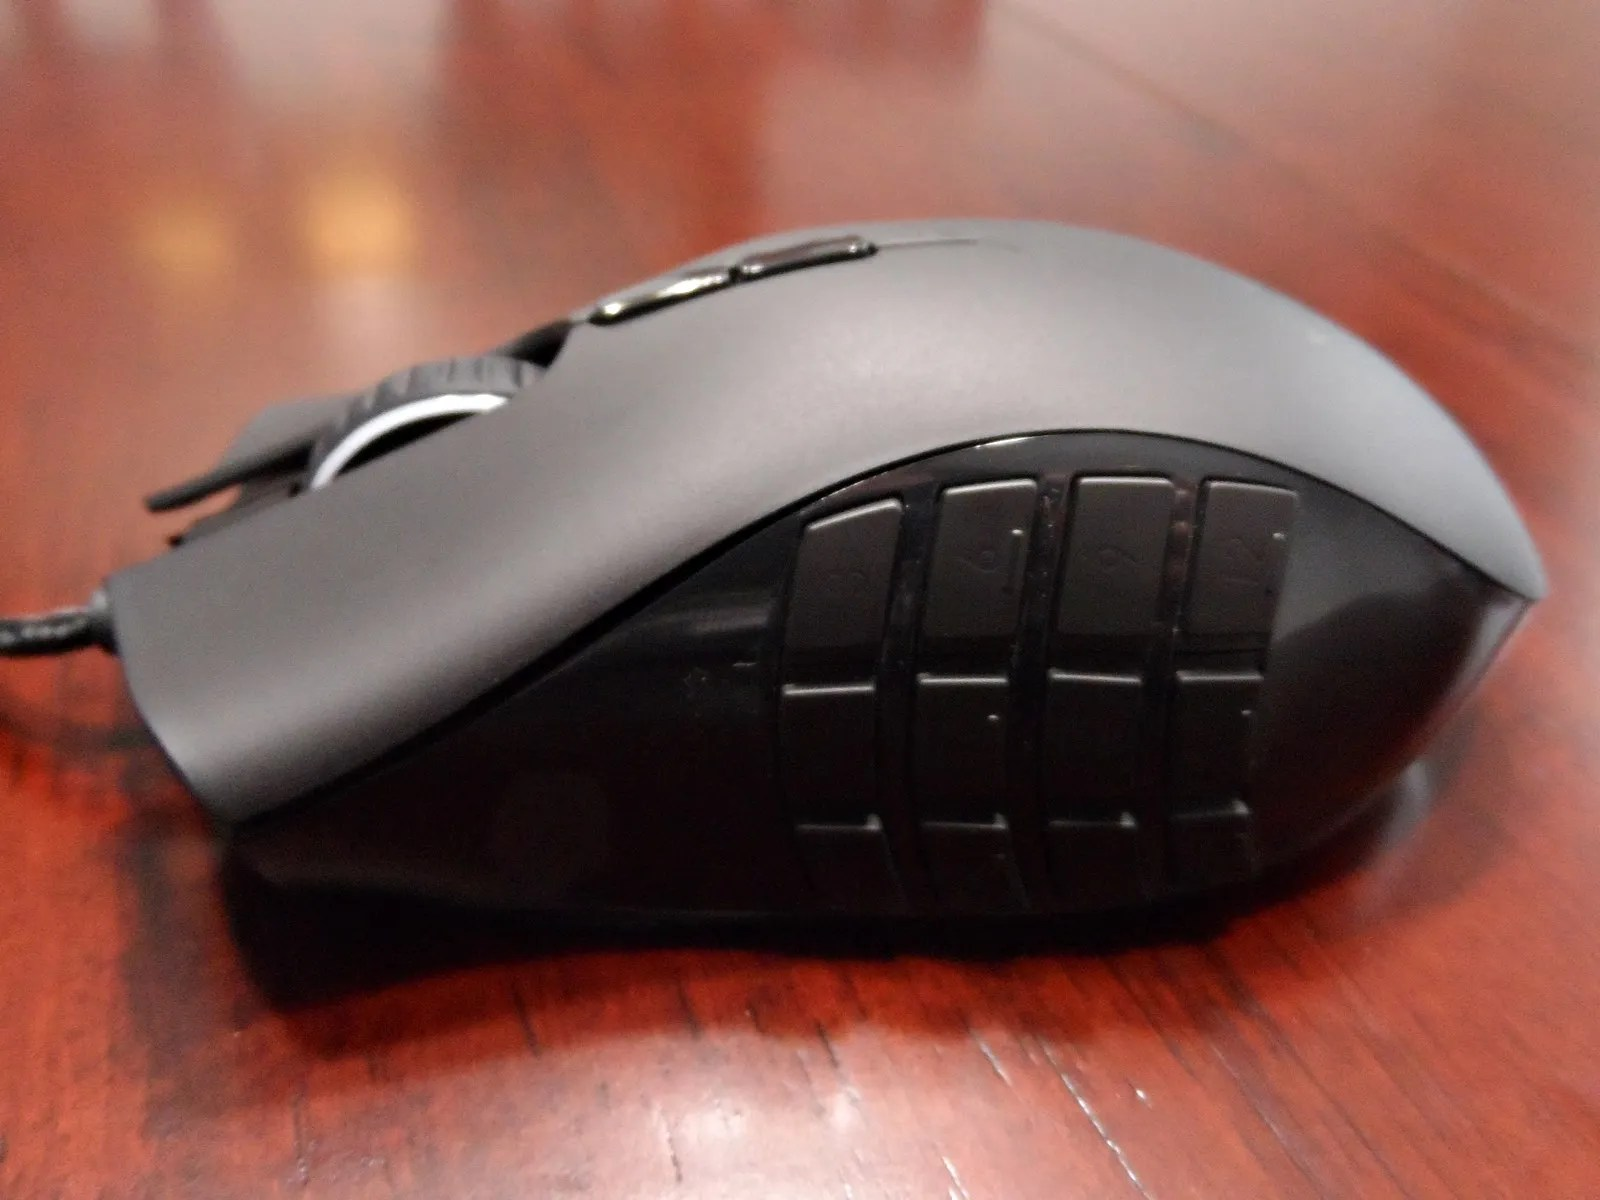 Razer Naga Logitech G600 MMO Gaming Mice Review And Giveaway